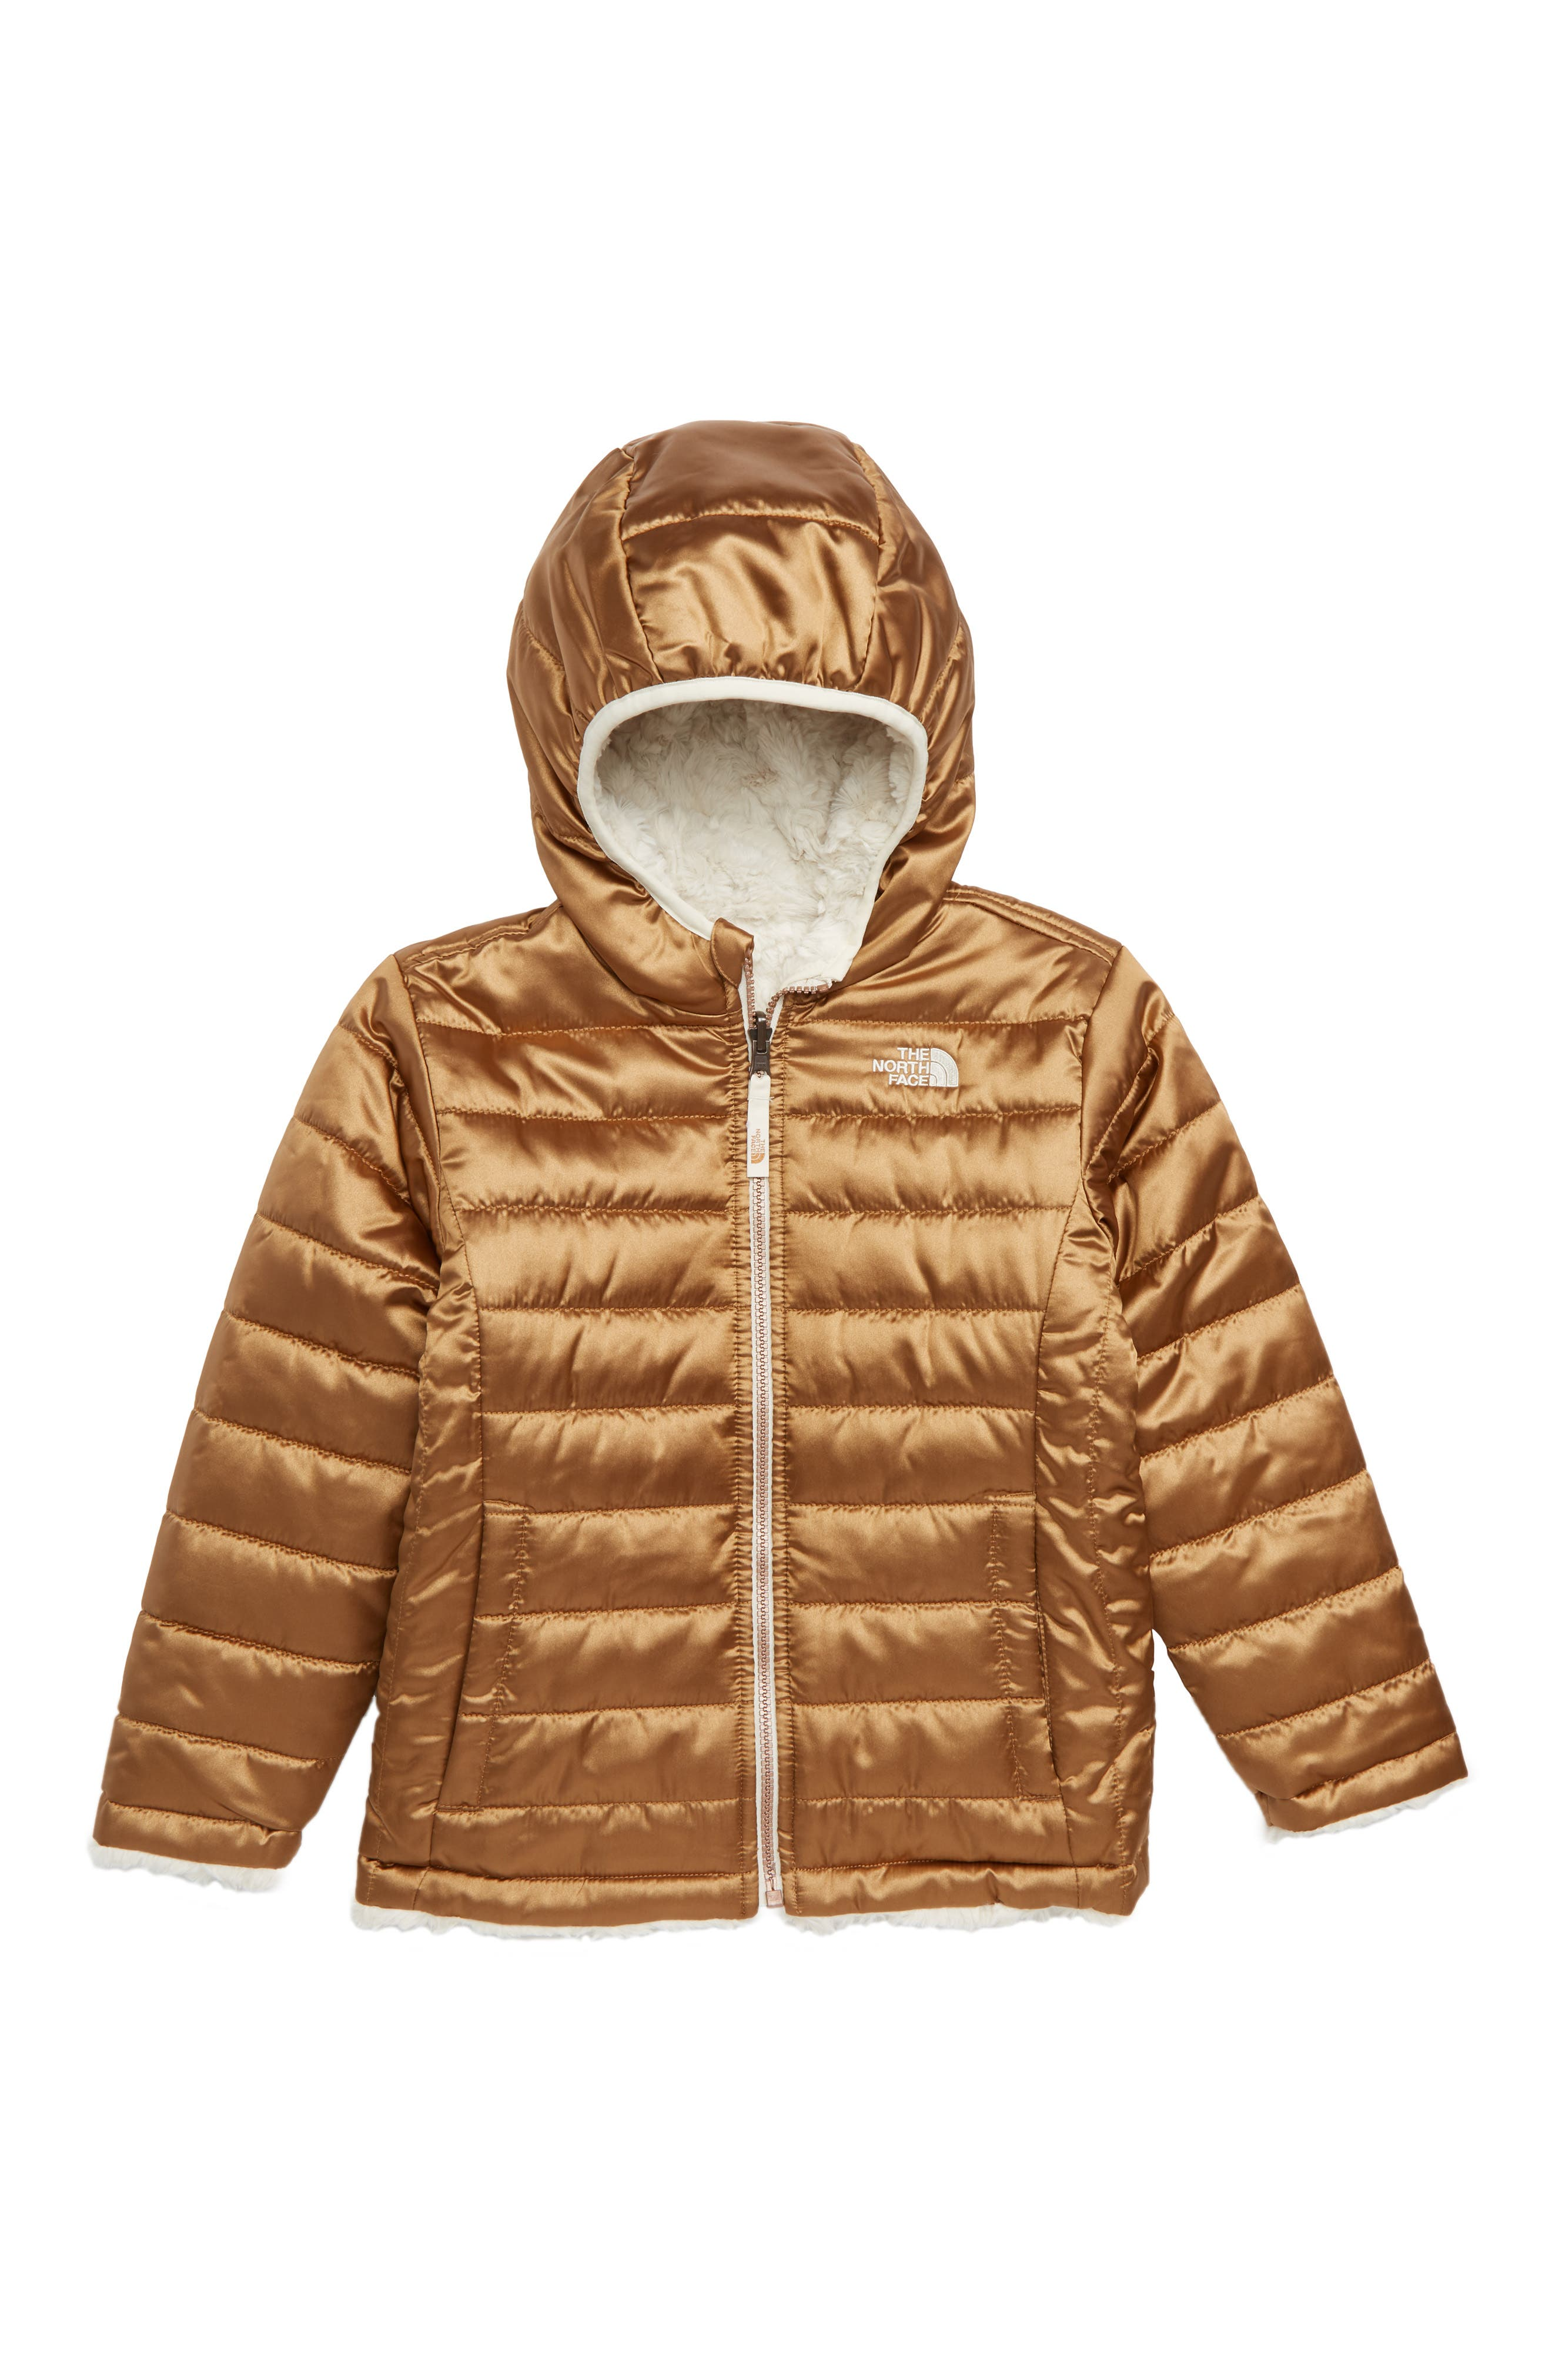 Mossbud Reversible Water Repellent Jacket,                         Main,                         color, METALLIC COPPER